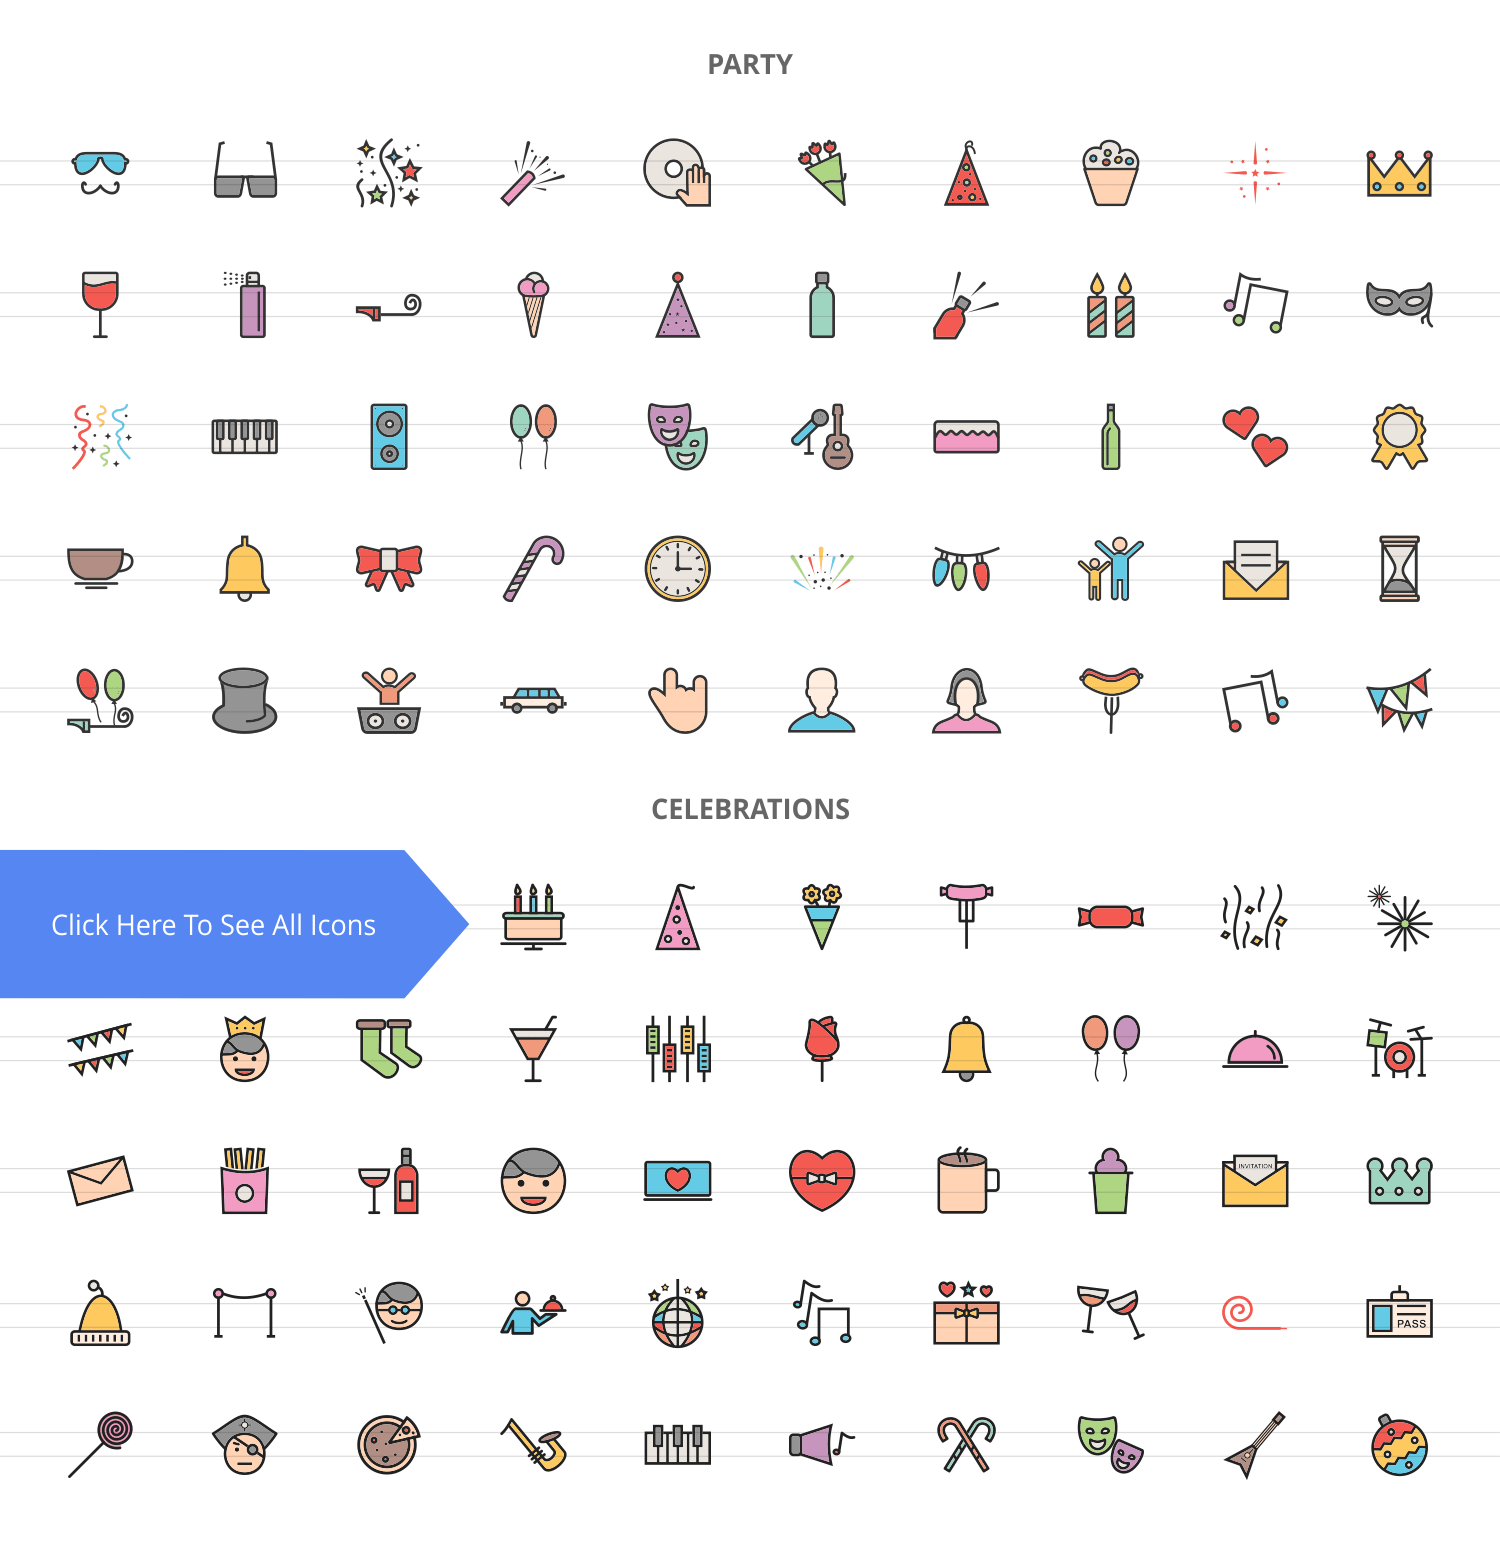 100 Party Filled Line Icons example image 2